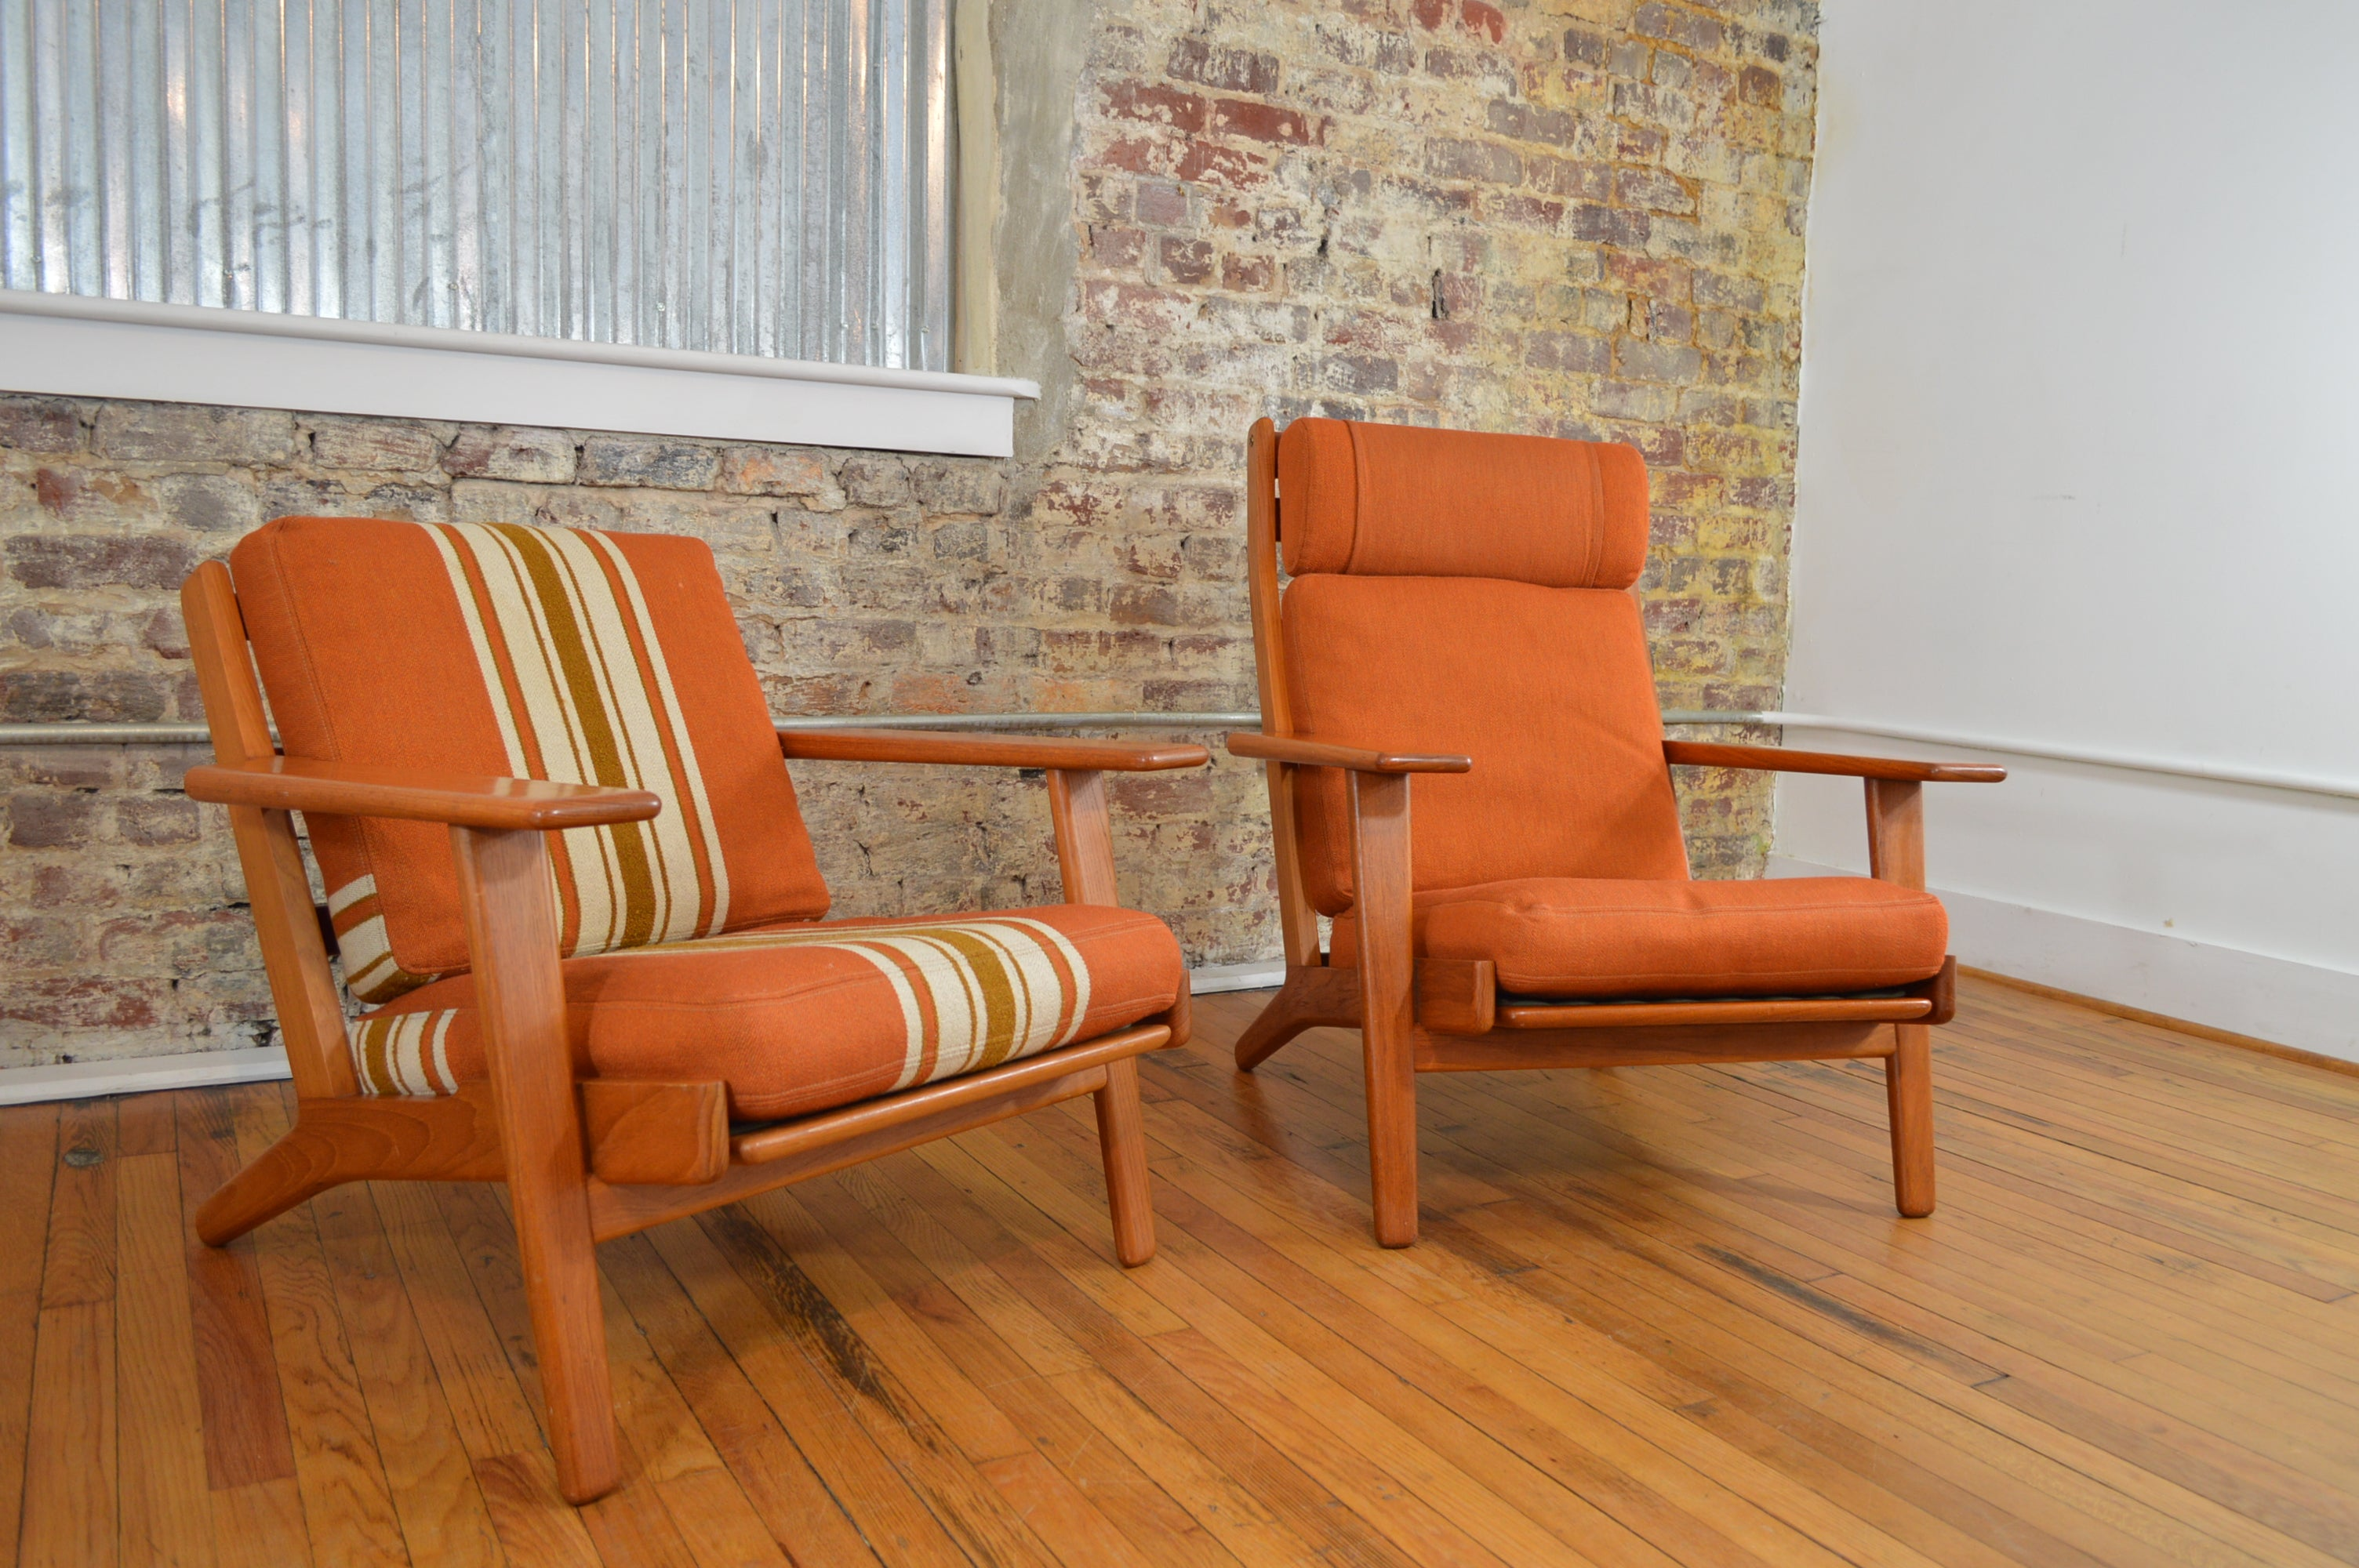 Hans Wegner Pair Of High And Low Lounge Chairs Model GE290 For GETAMA